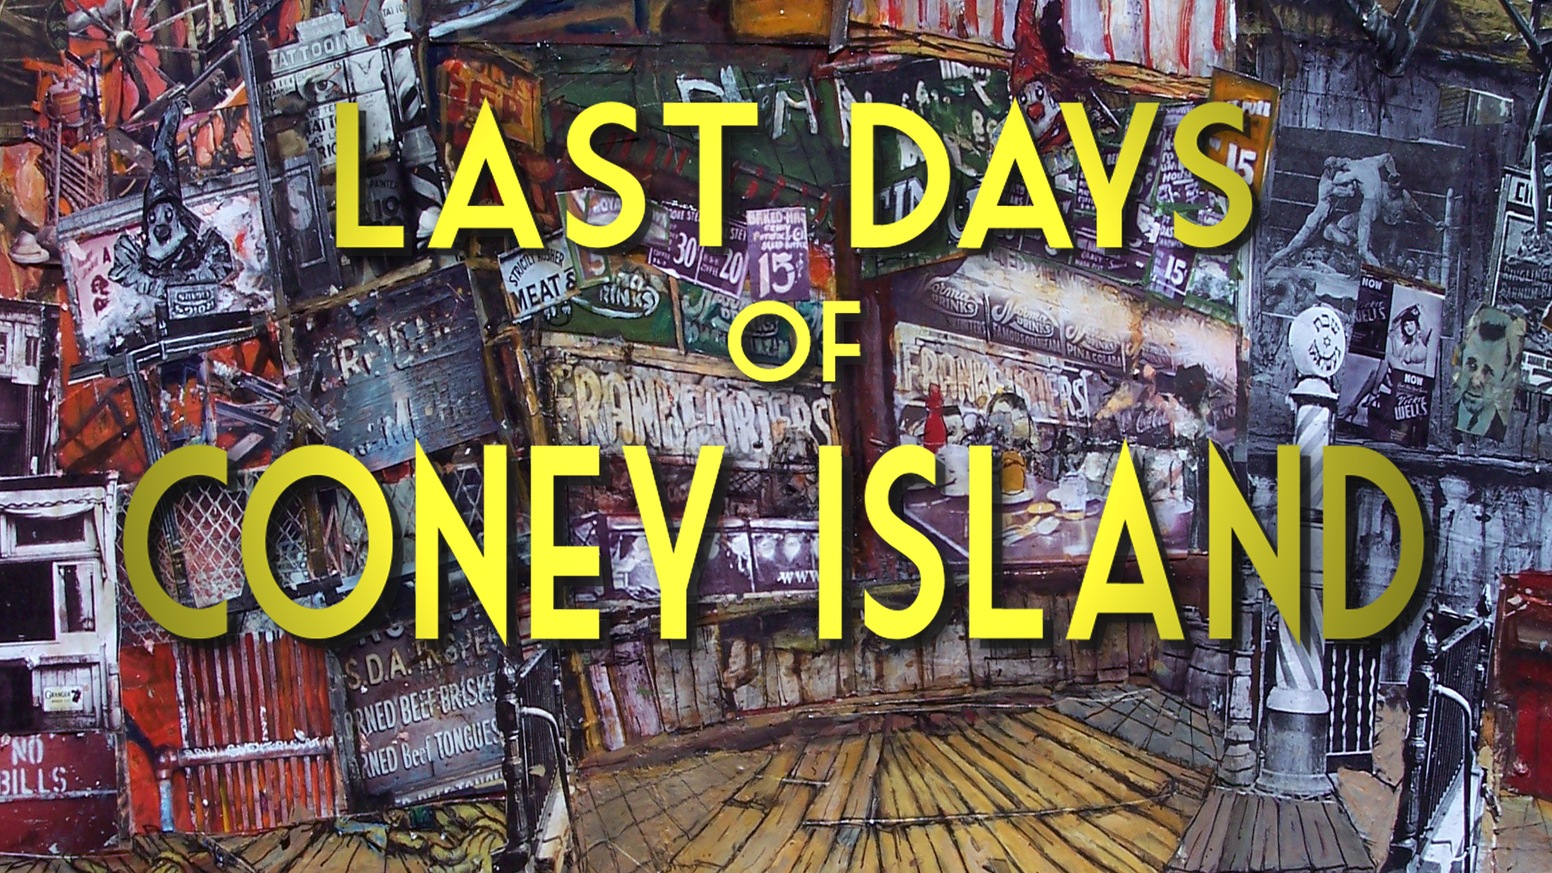 It's an animated cop, mafia, horror movie set in the 1960s in Coney Island, with political overtones both realistic and outrageous.